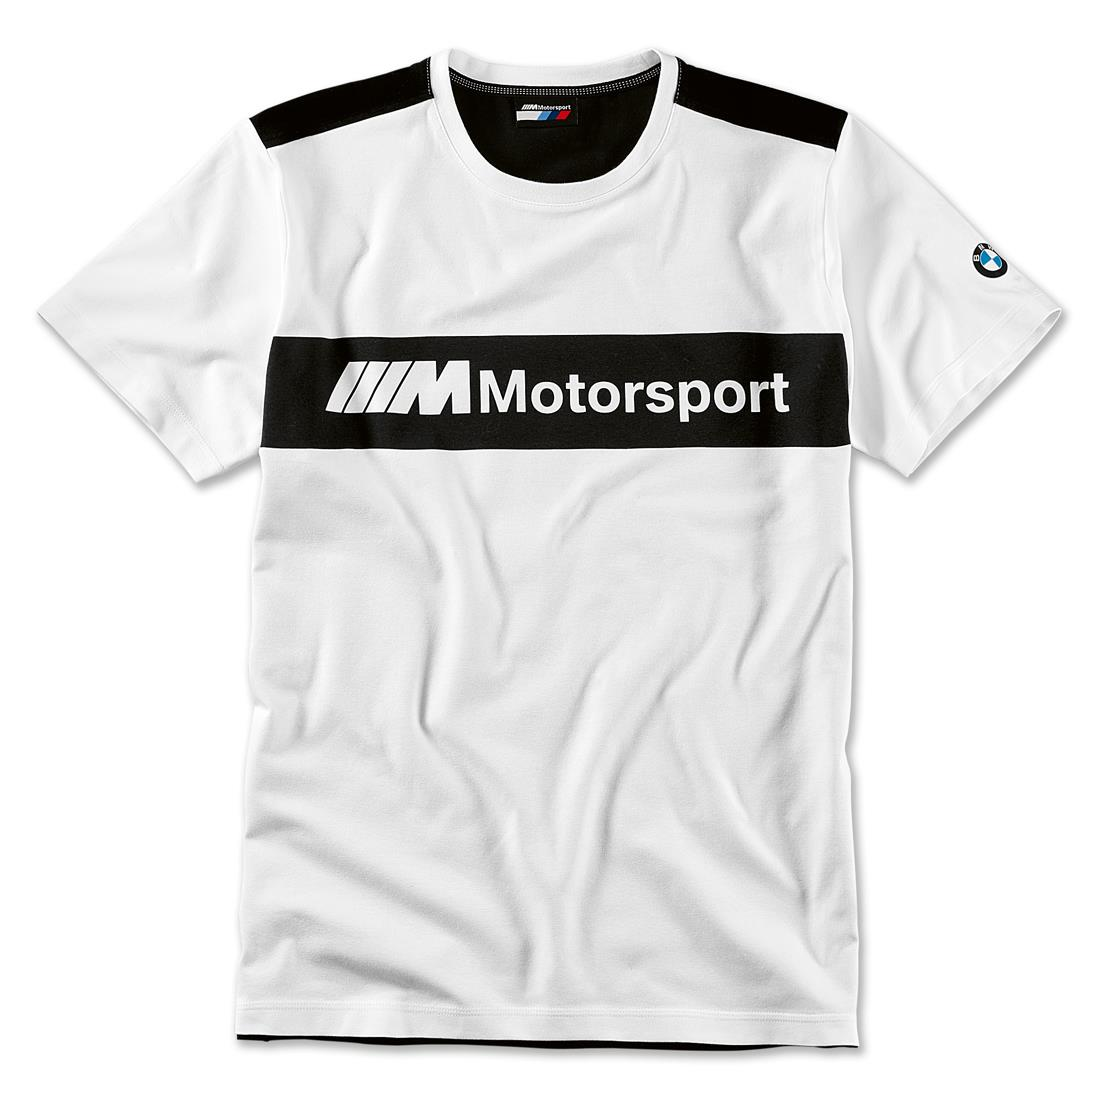 ShopBMWUSA.com | BMW M Motorsport T-Shirt